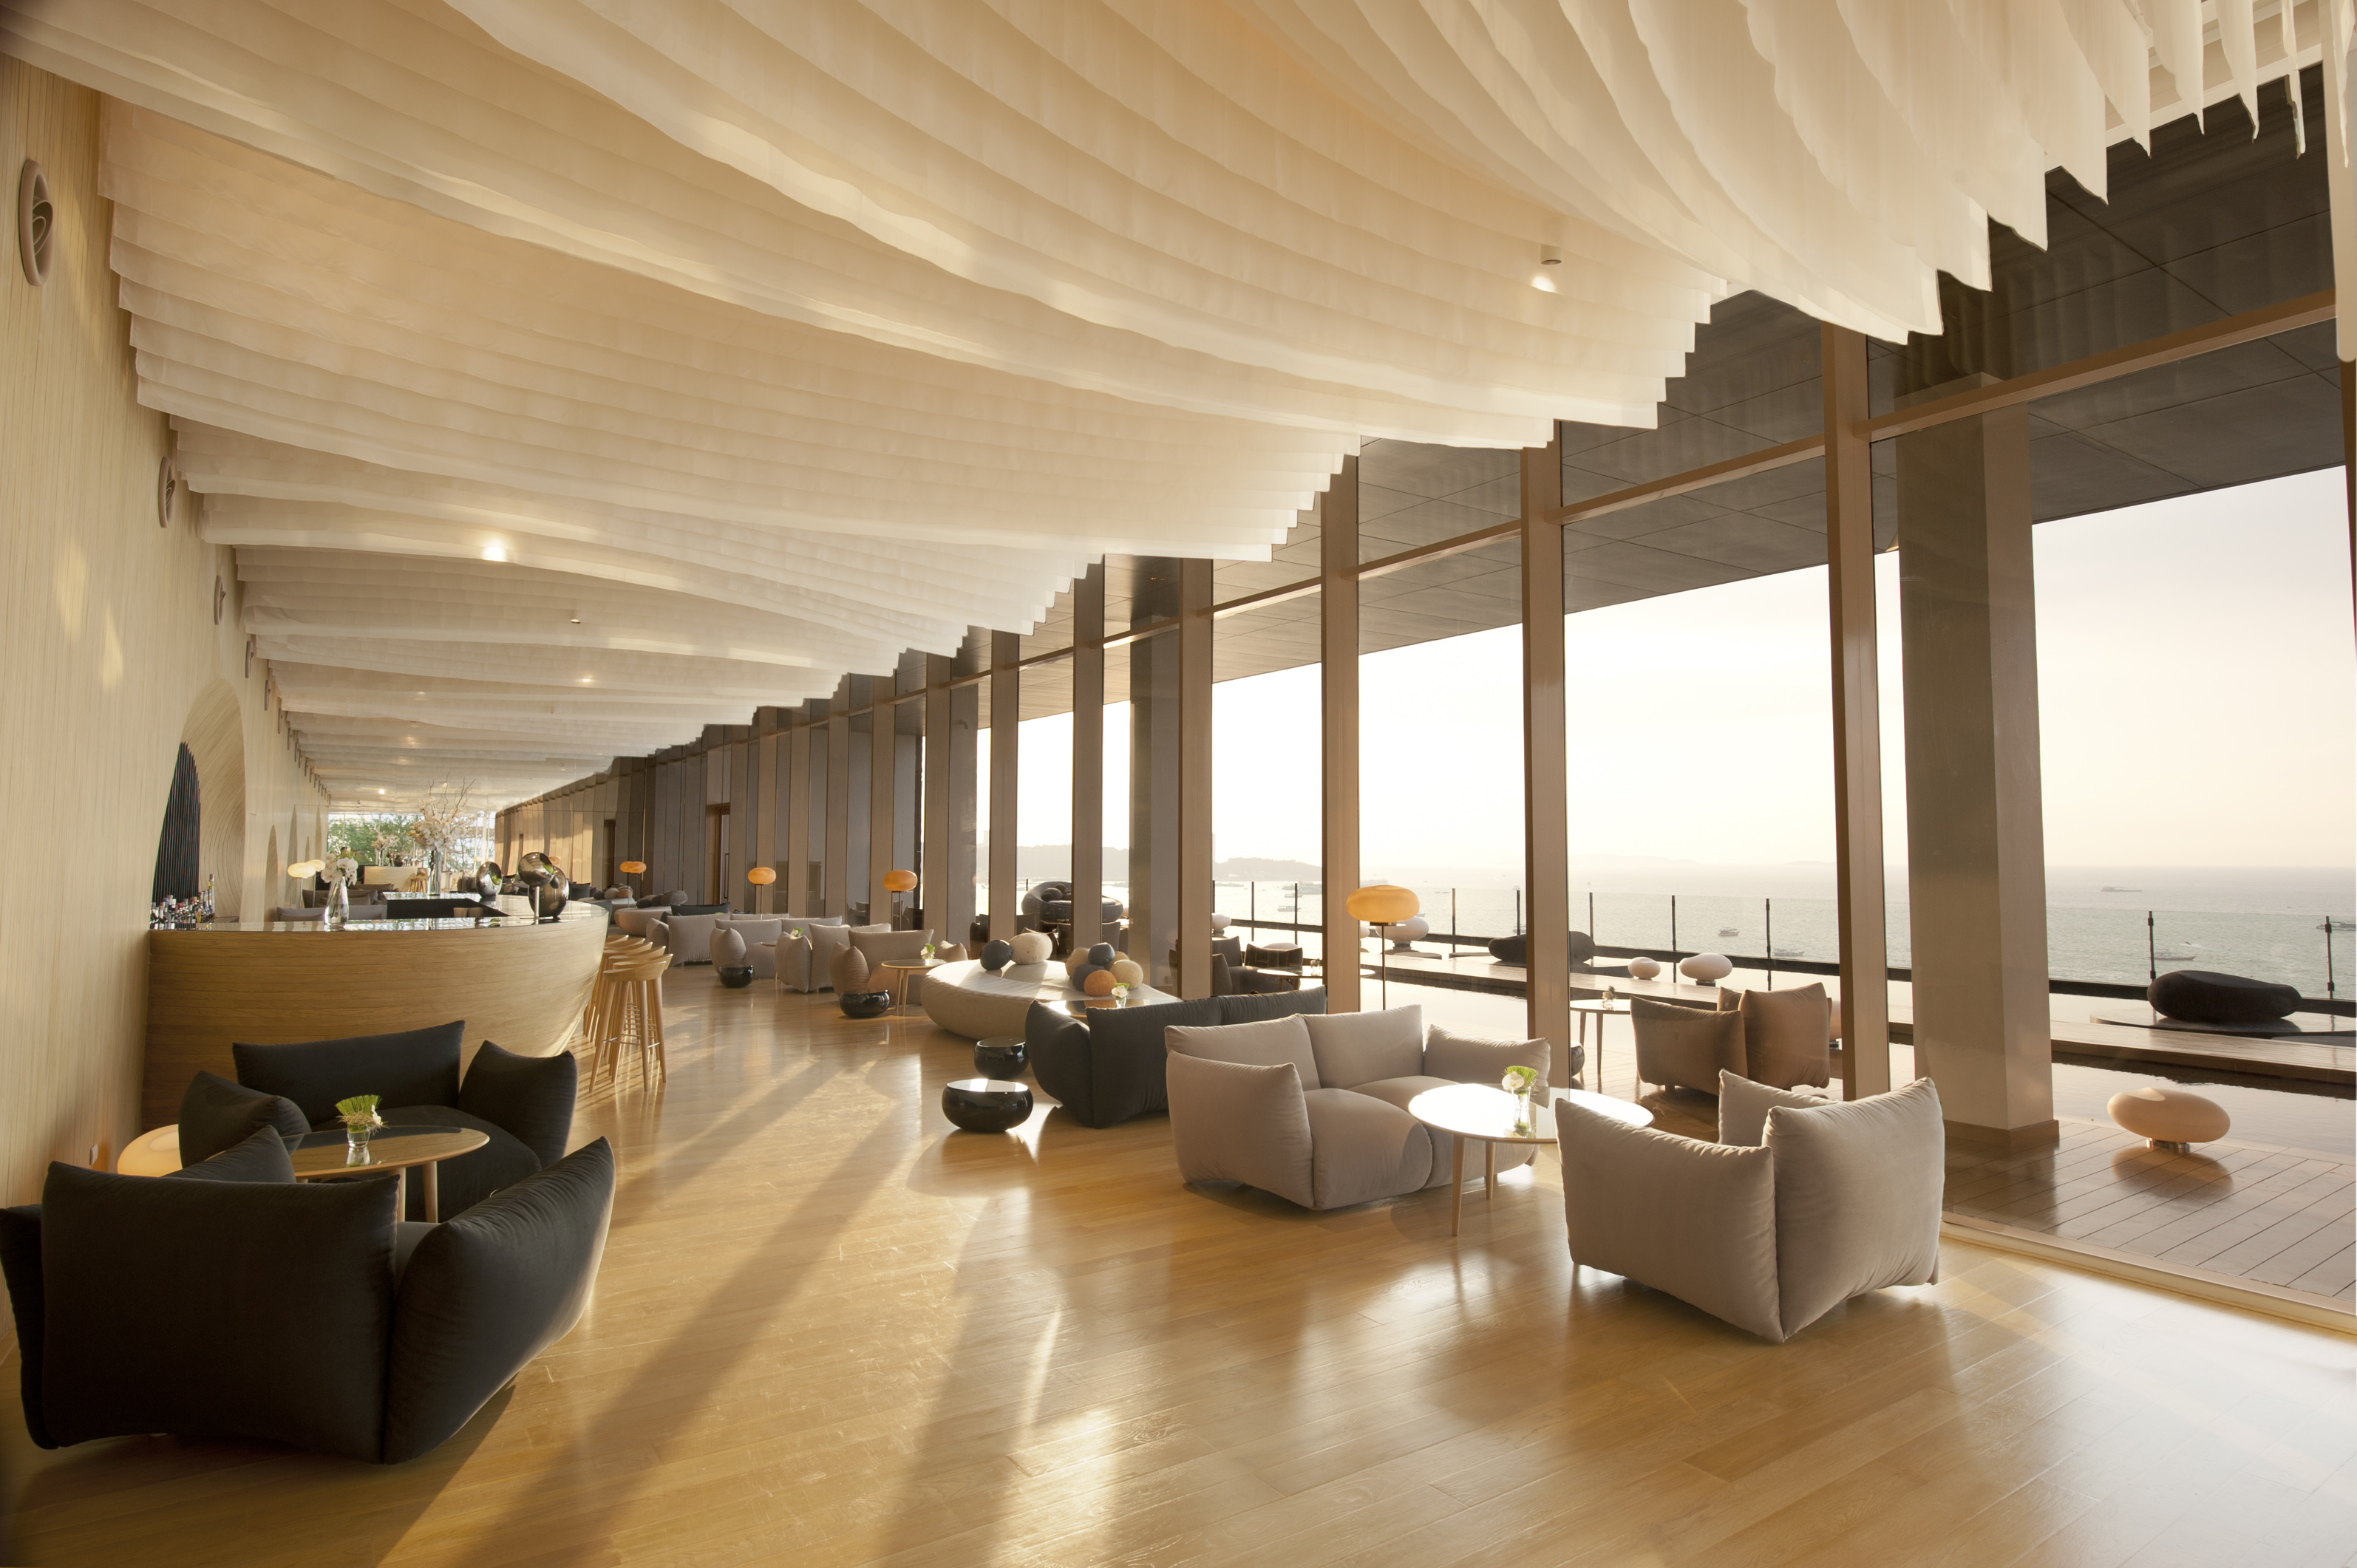 Hilton pattaya announces its new dine and fly with hilton for Piattaia design